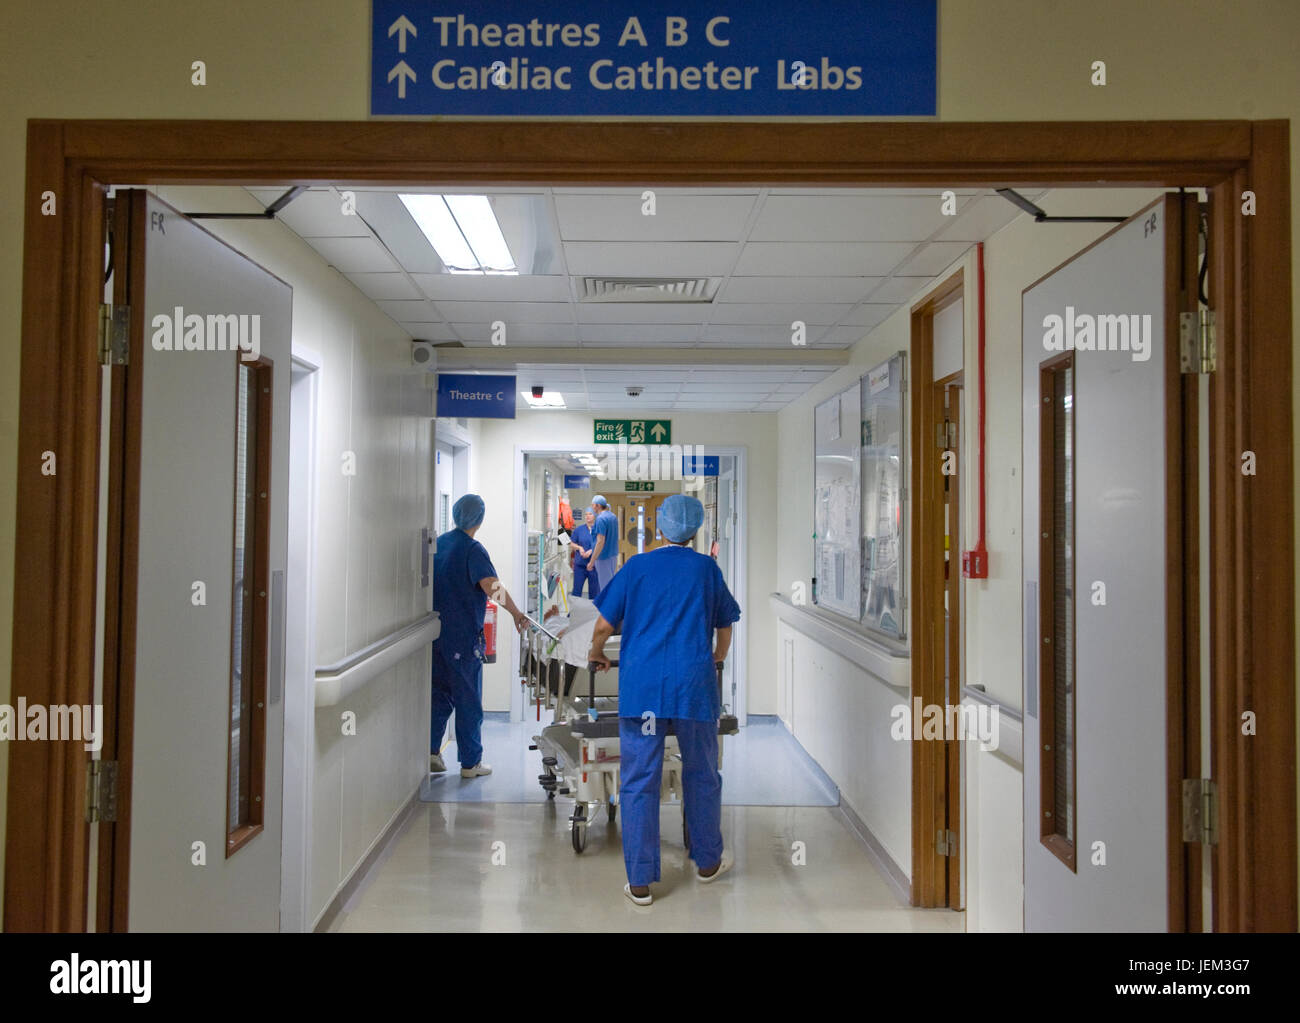 A patient is taken for a cardiac operation in a hospital operating suite. - Stock Image